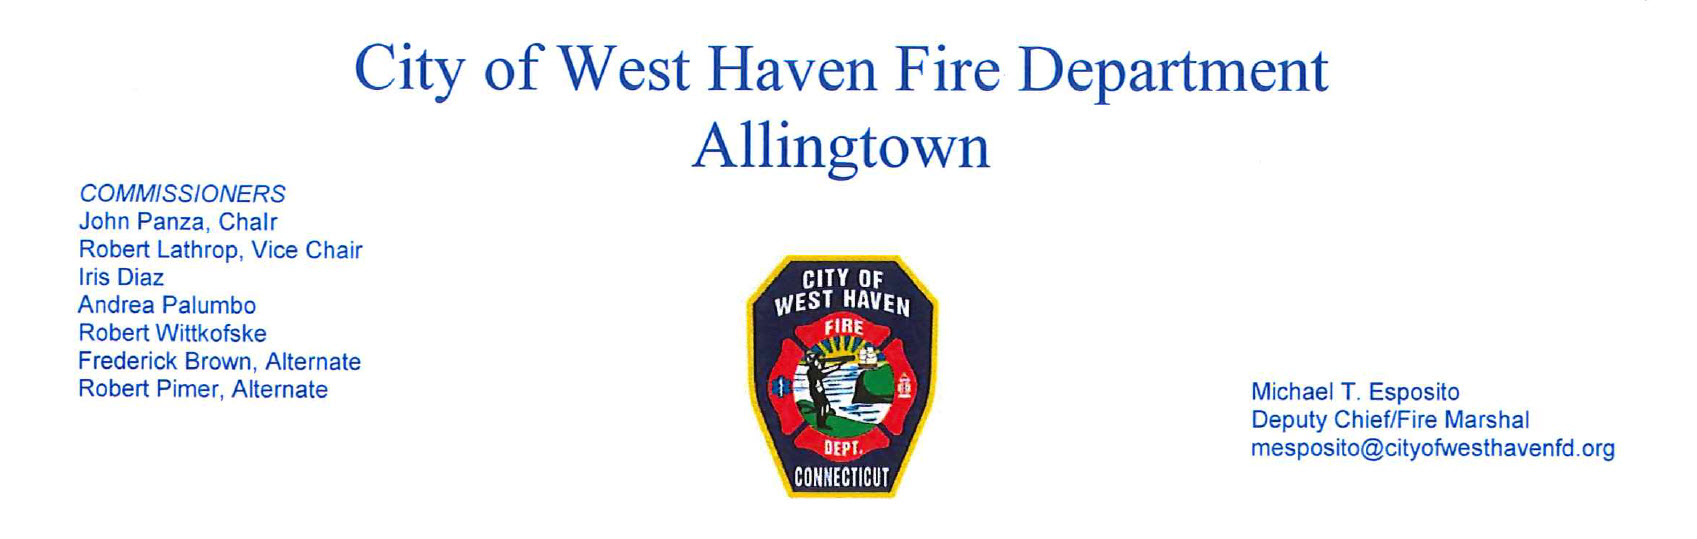 West Haven, Allingtown, CT Firefighter Jobs - Firefighter